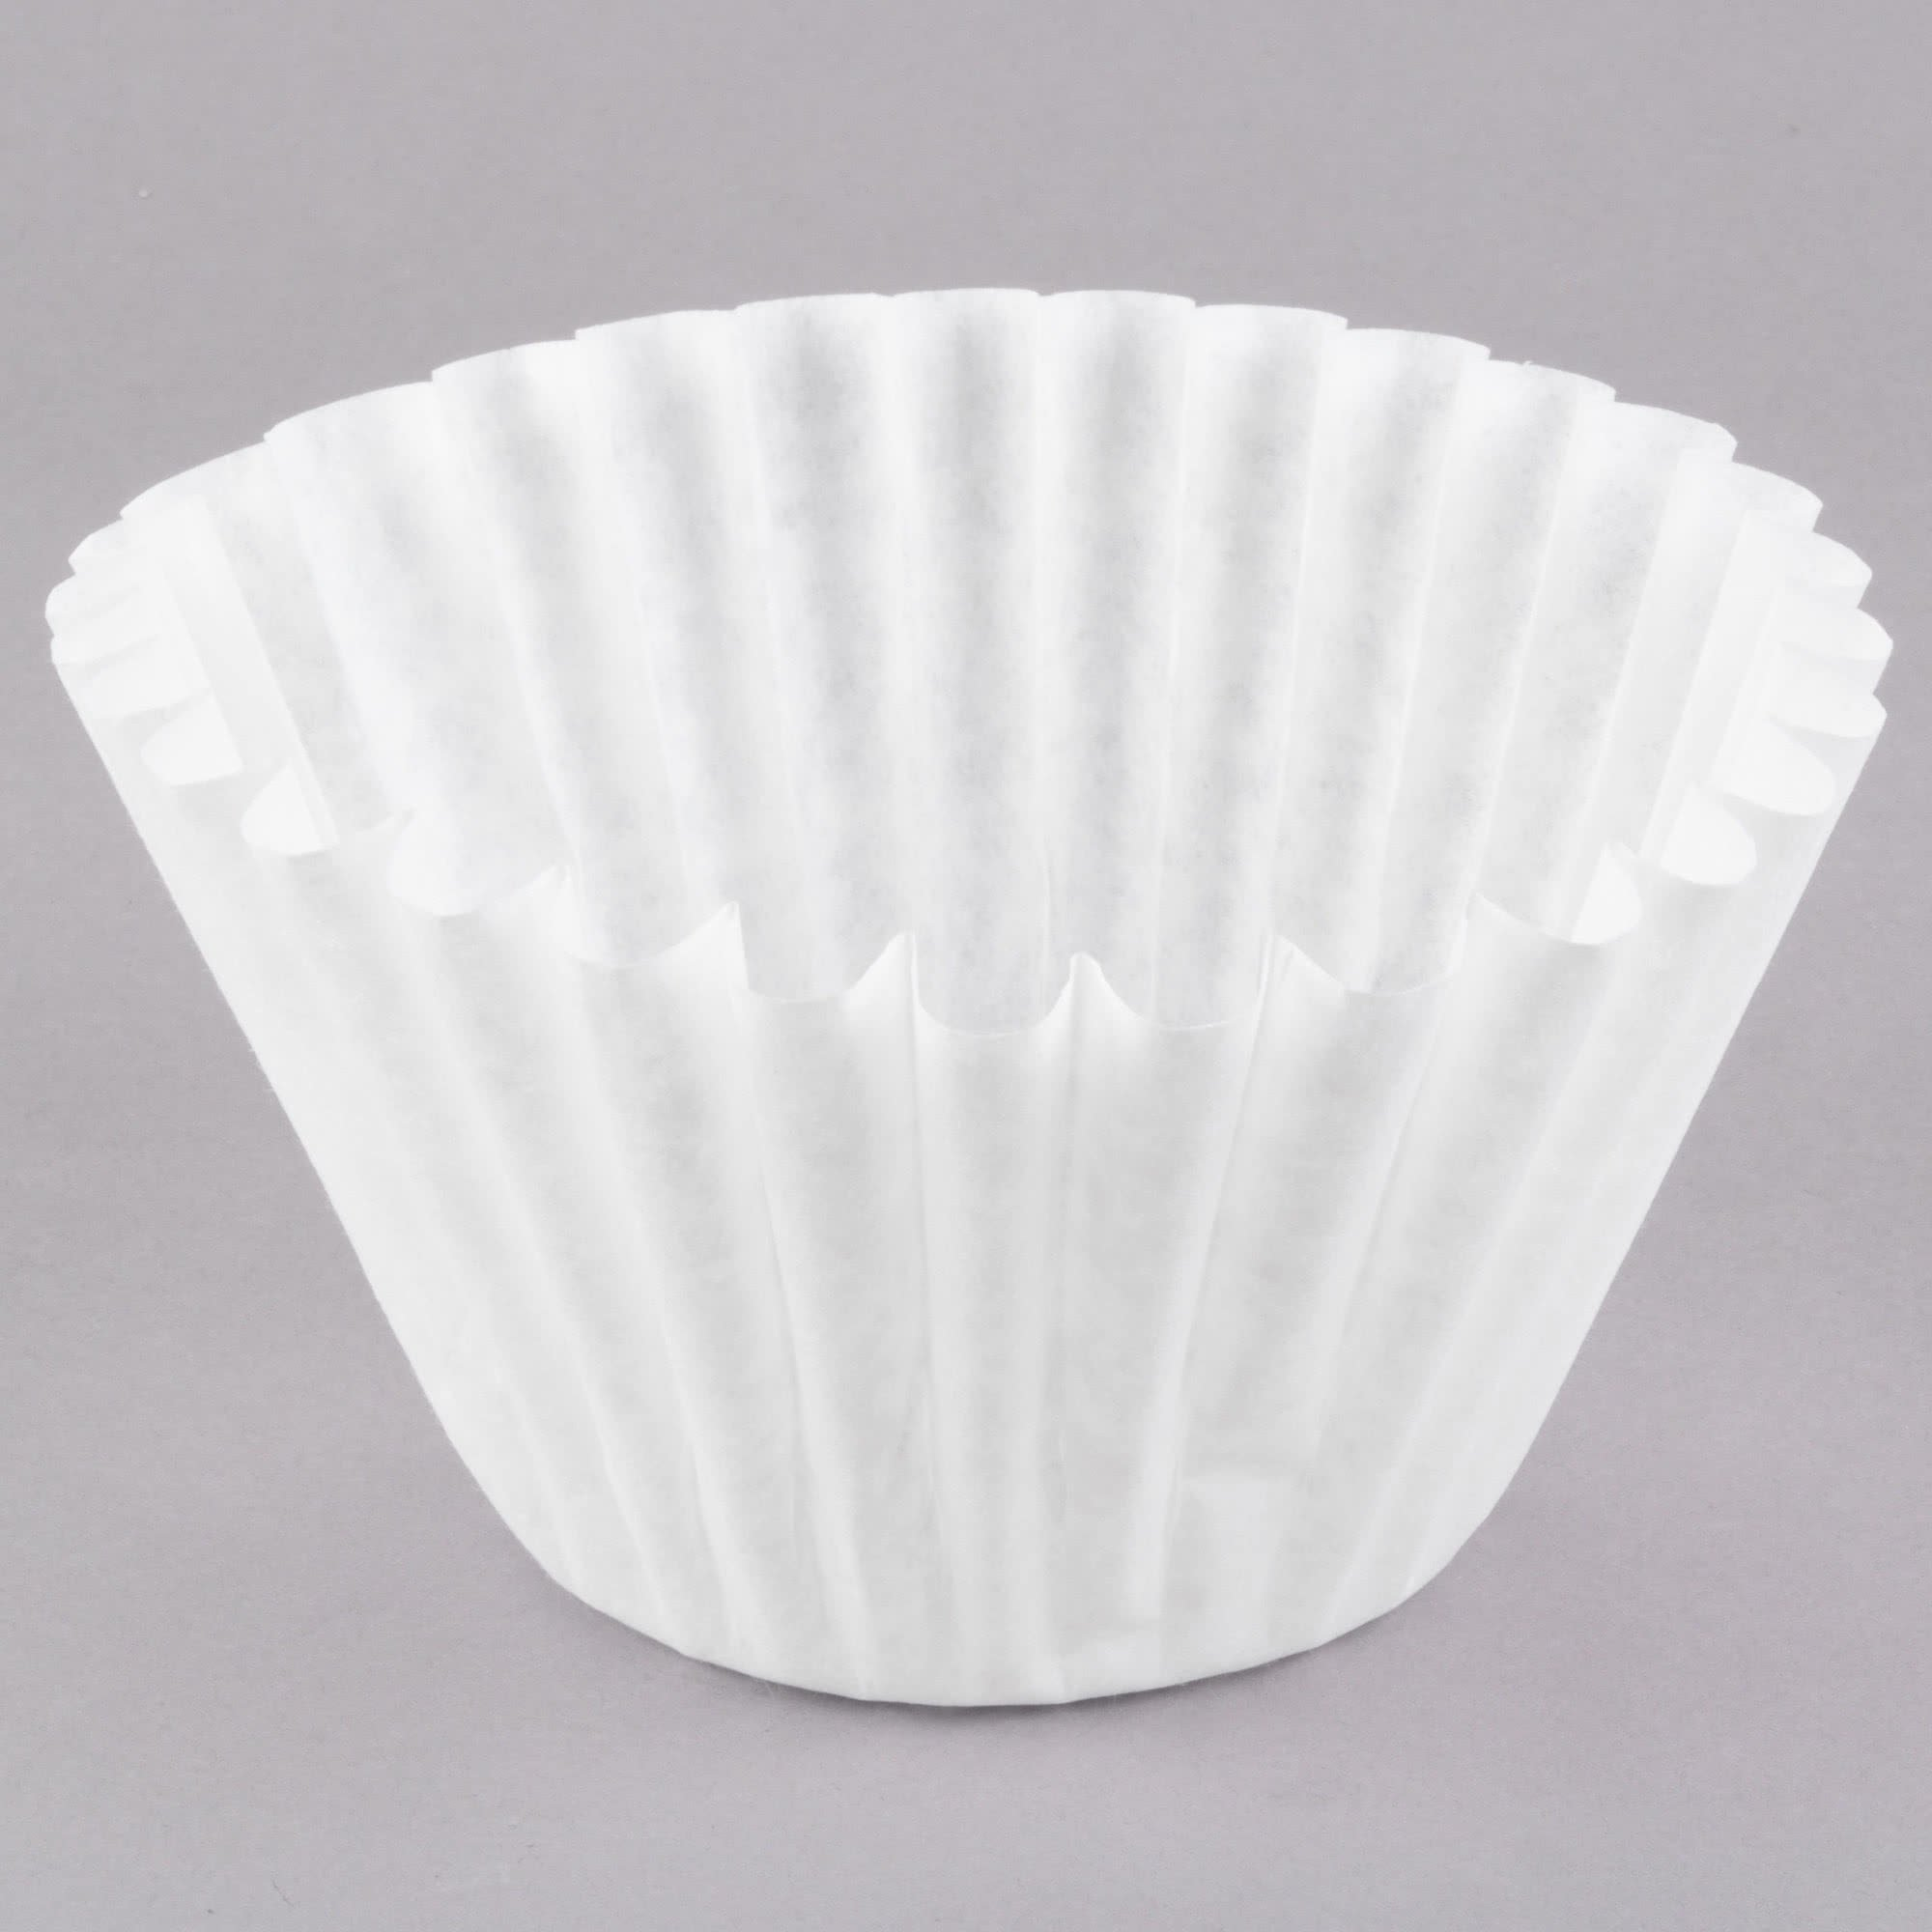 TableTop King 514 (F514U) 14'' x 5'' Coffee Filter for Satellite Coffee Brewers and Iced Tea Brewers - 500/Case